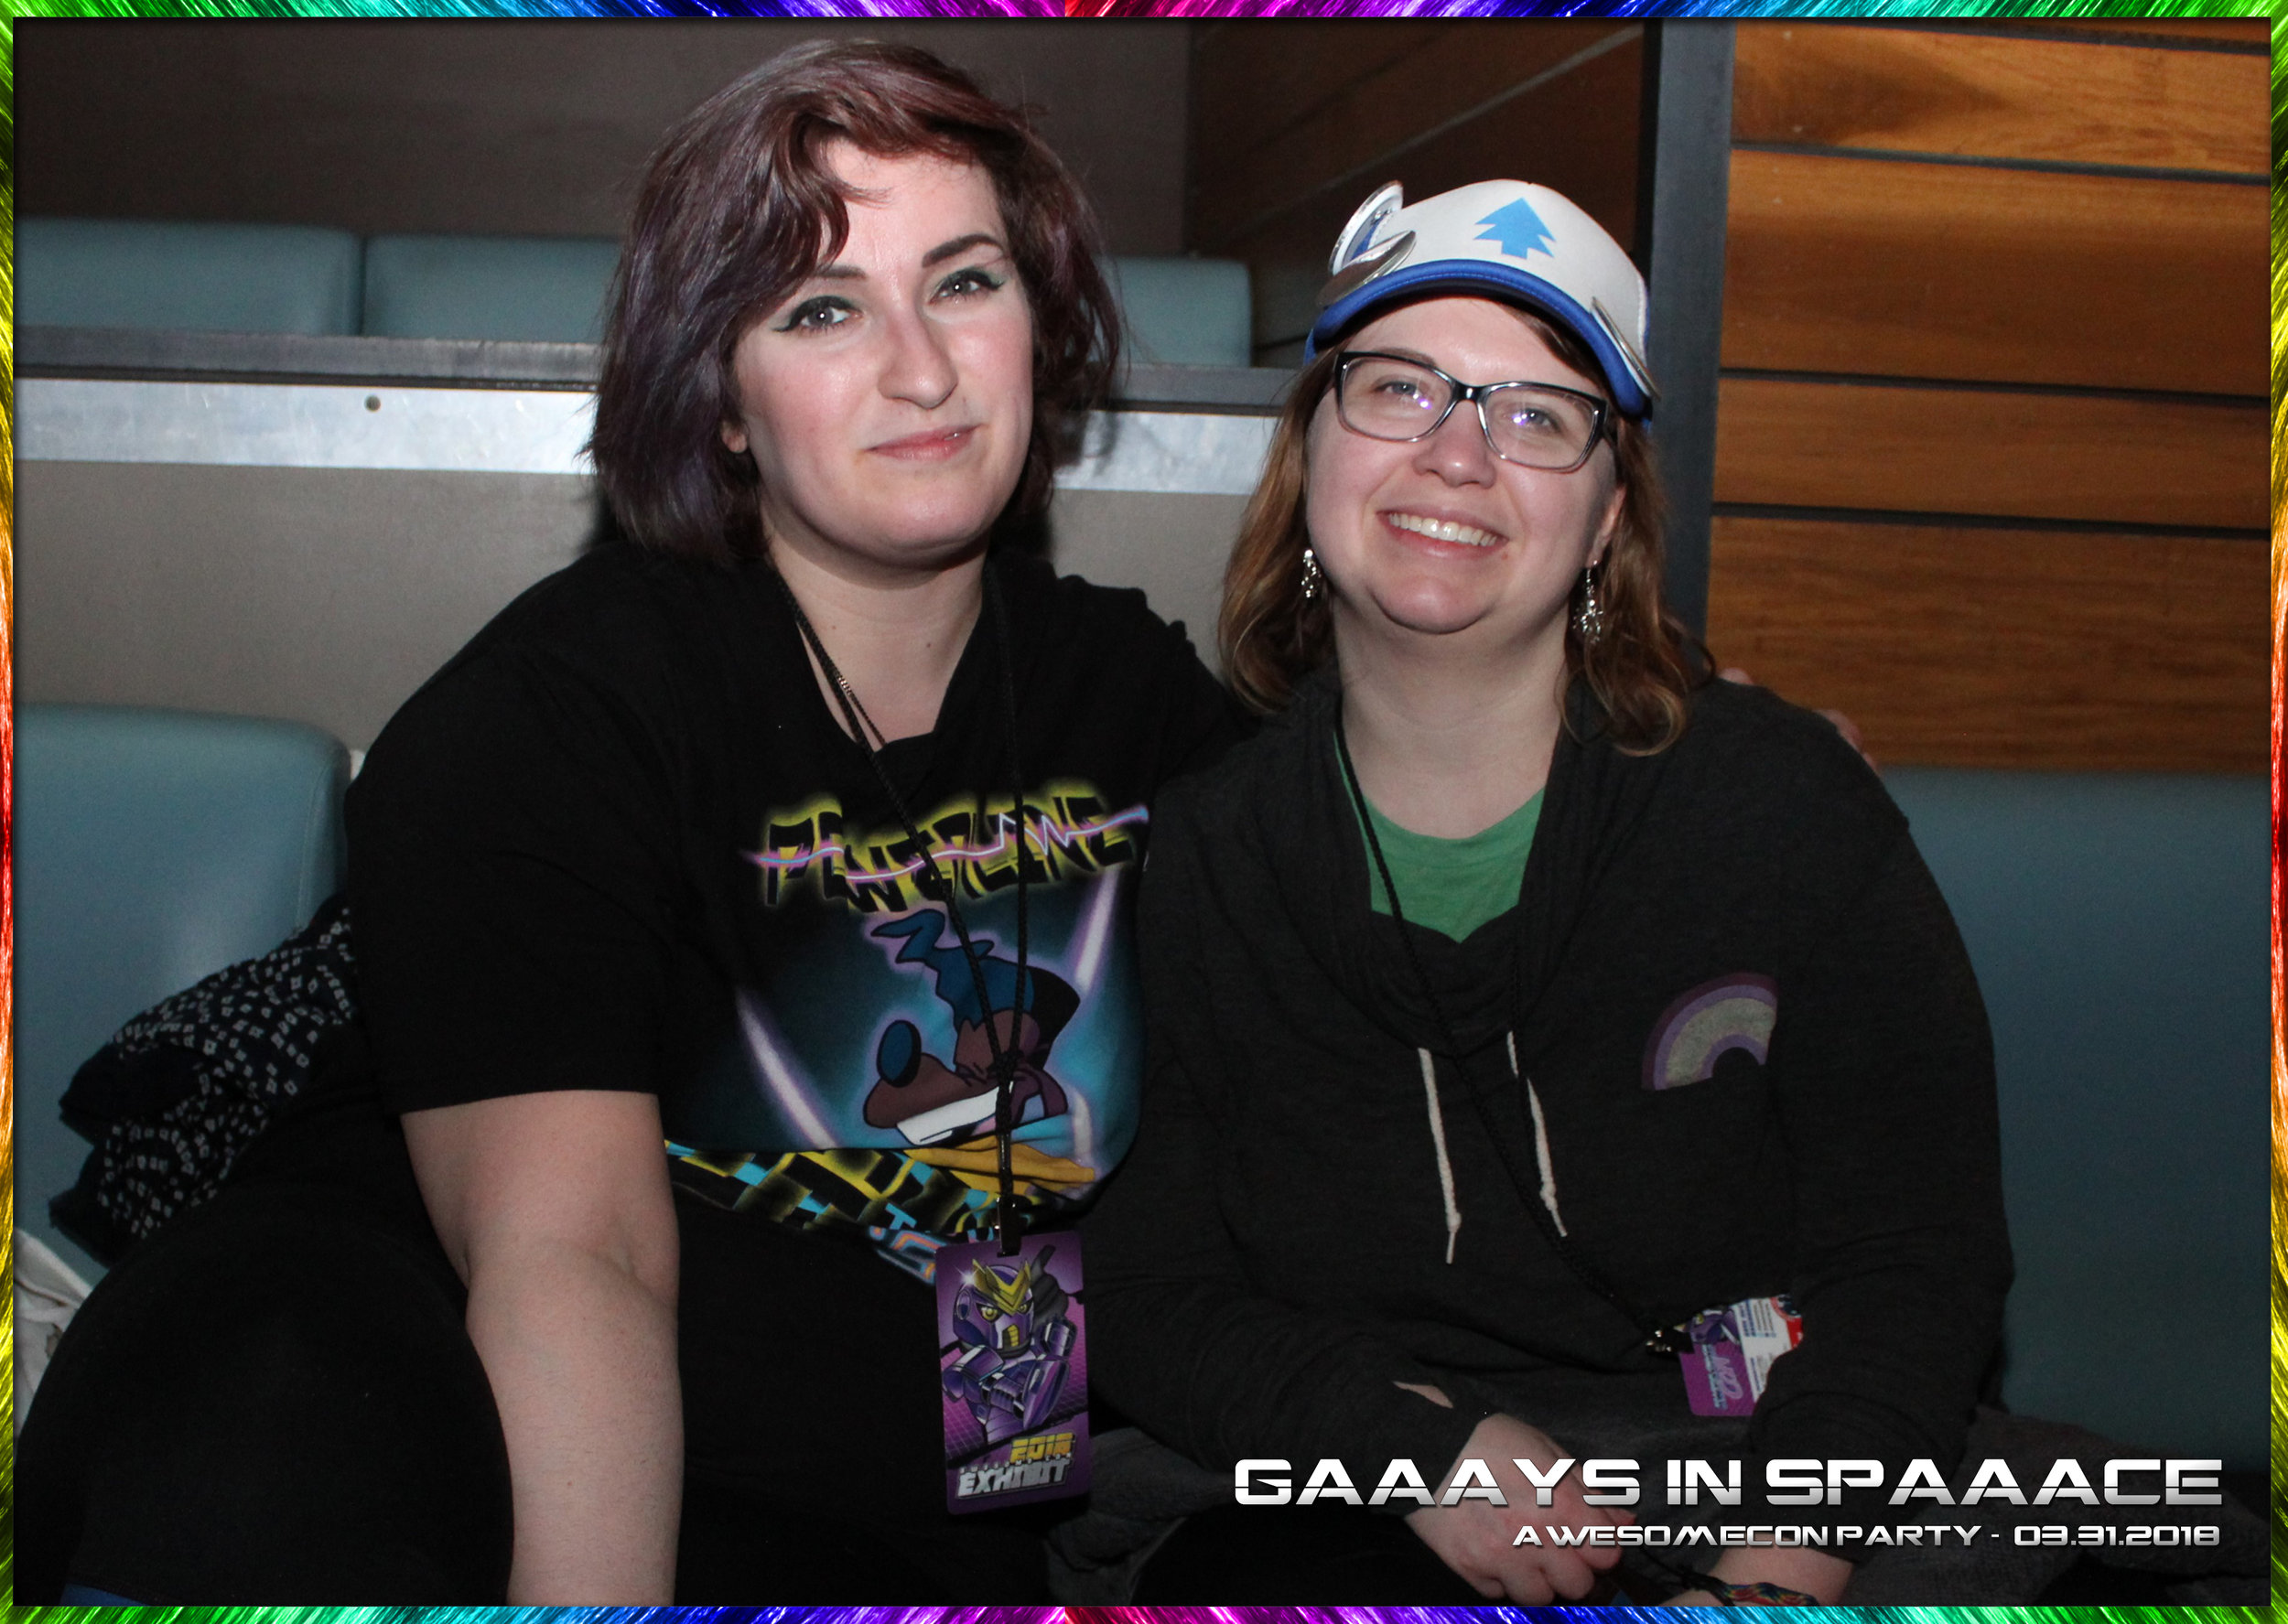 18-GIS-AwesomeConParty-3-31-18-Fans-2.jpg